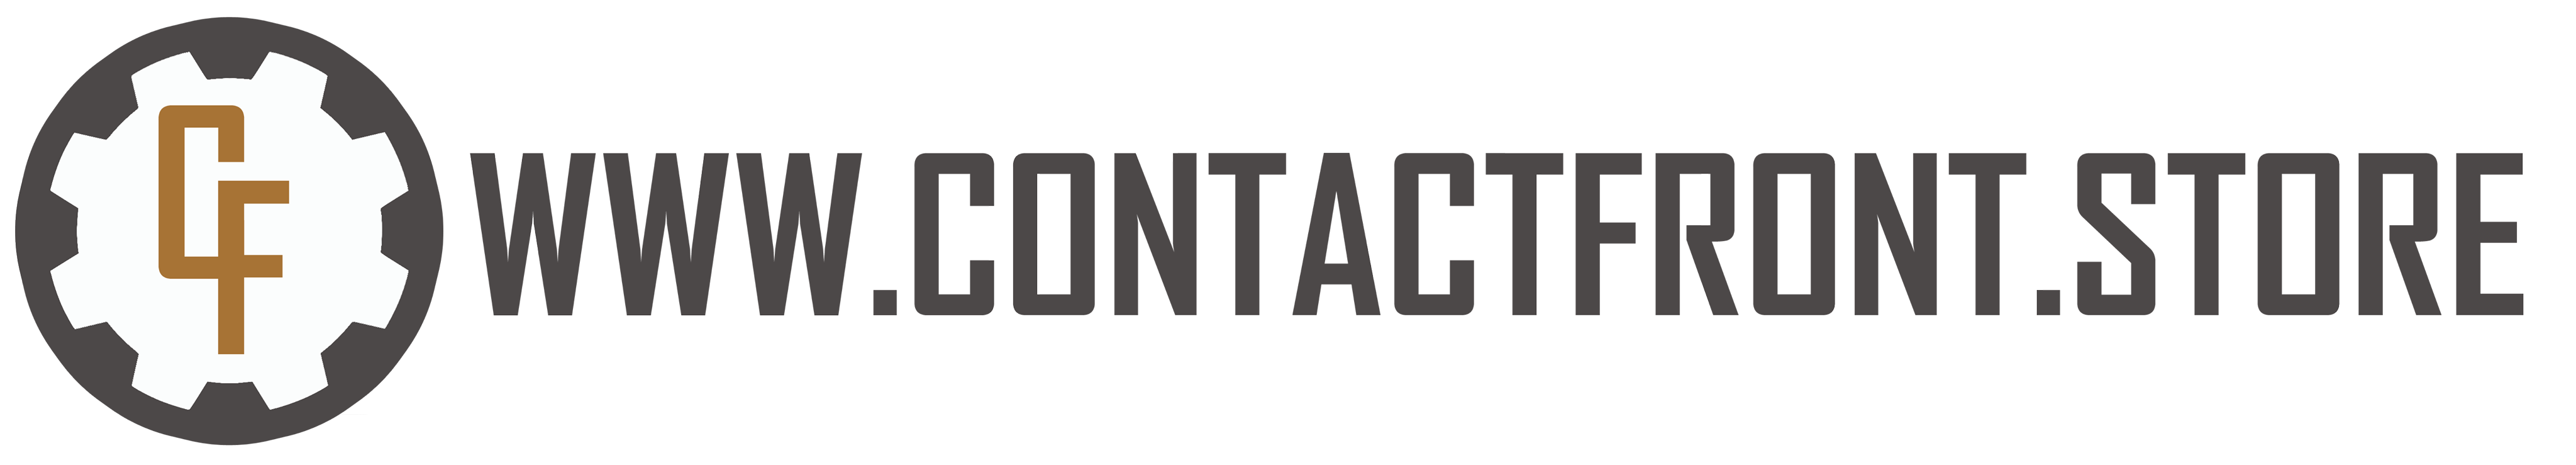 Contact Front